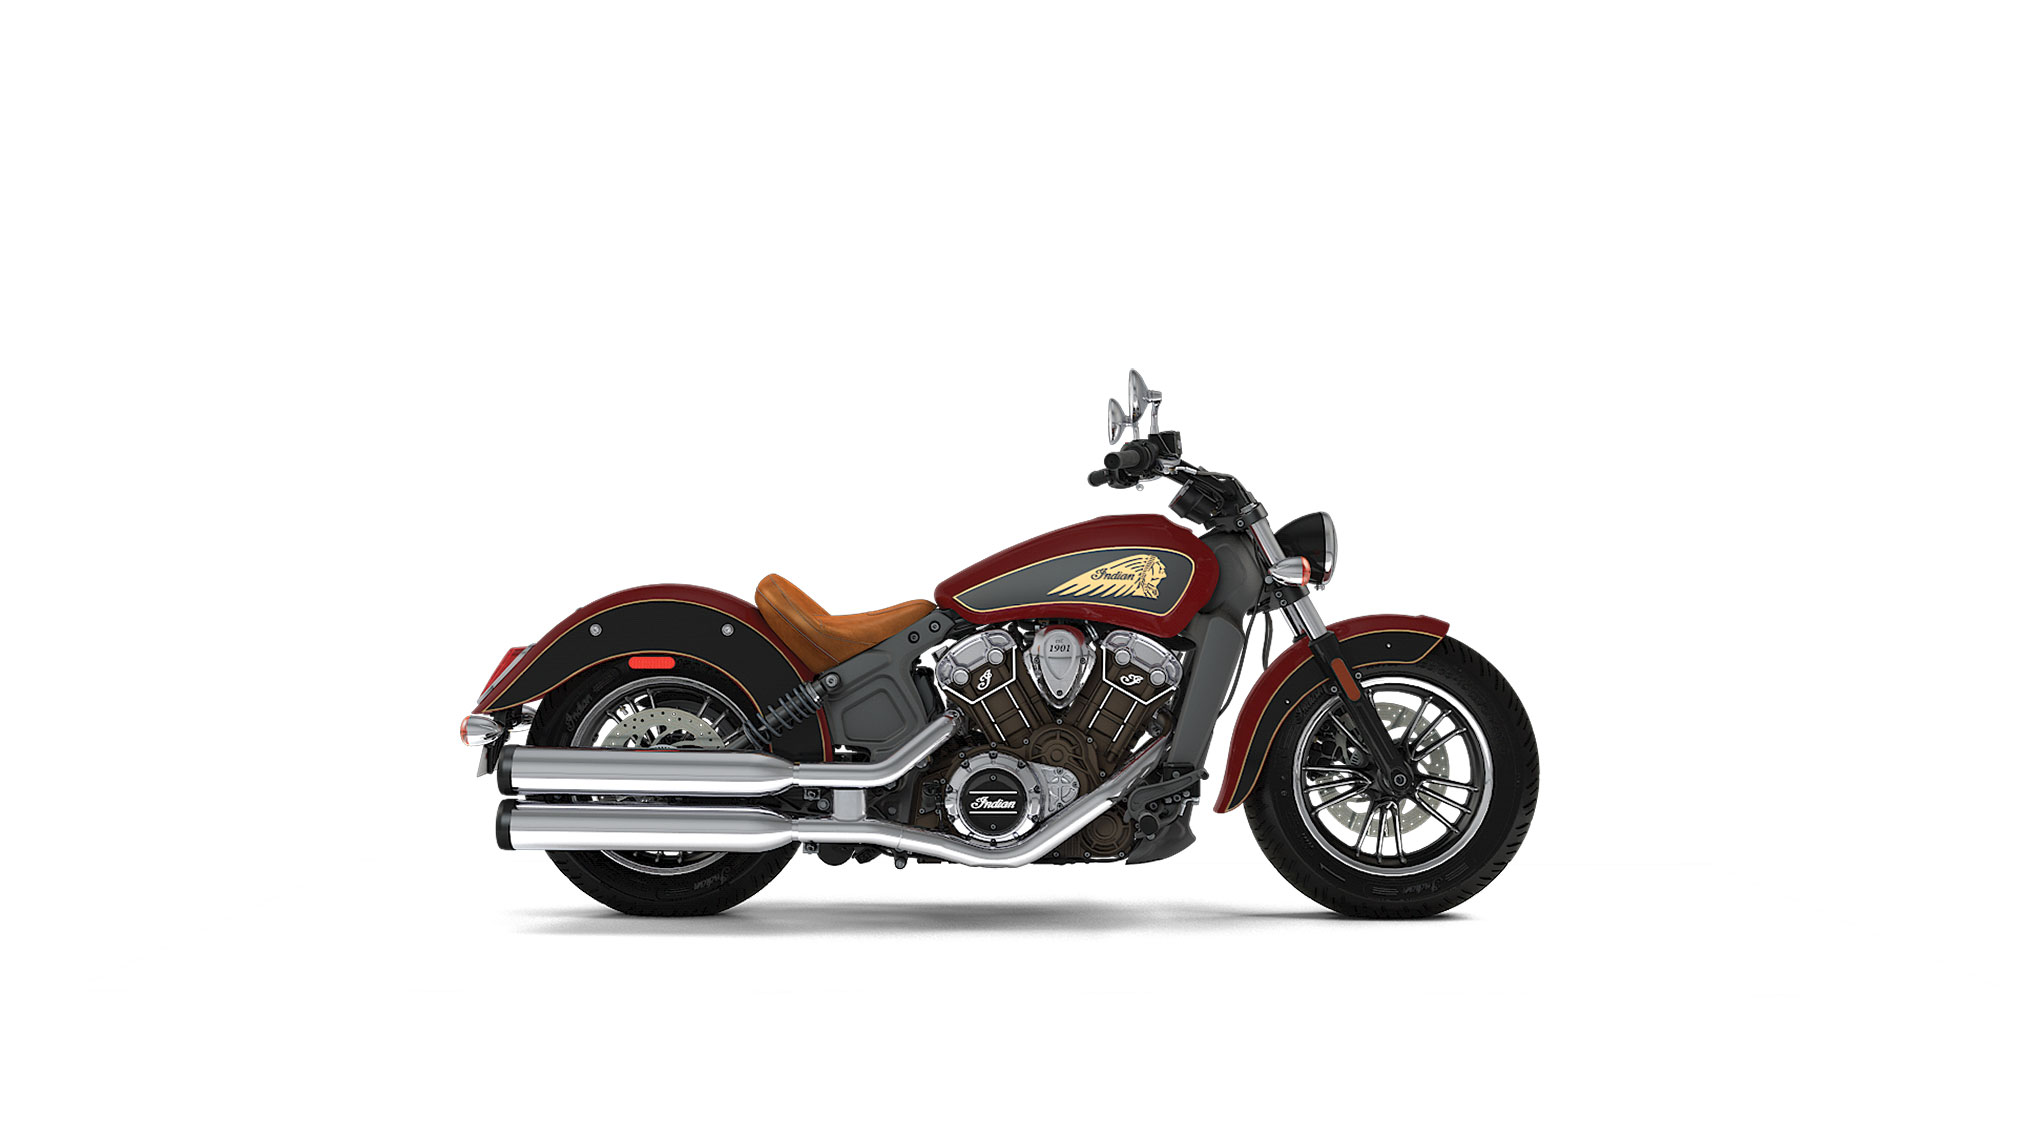 2017 Indian Scout HD Wallpaper | Background Image